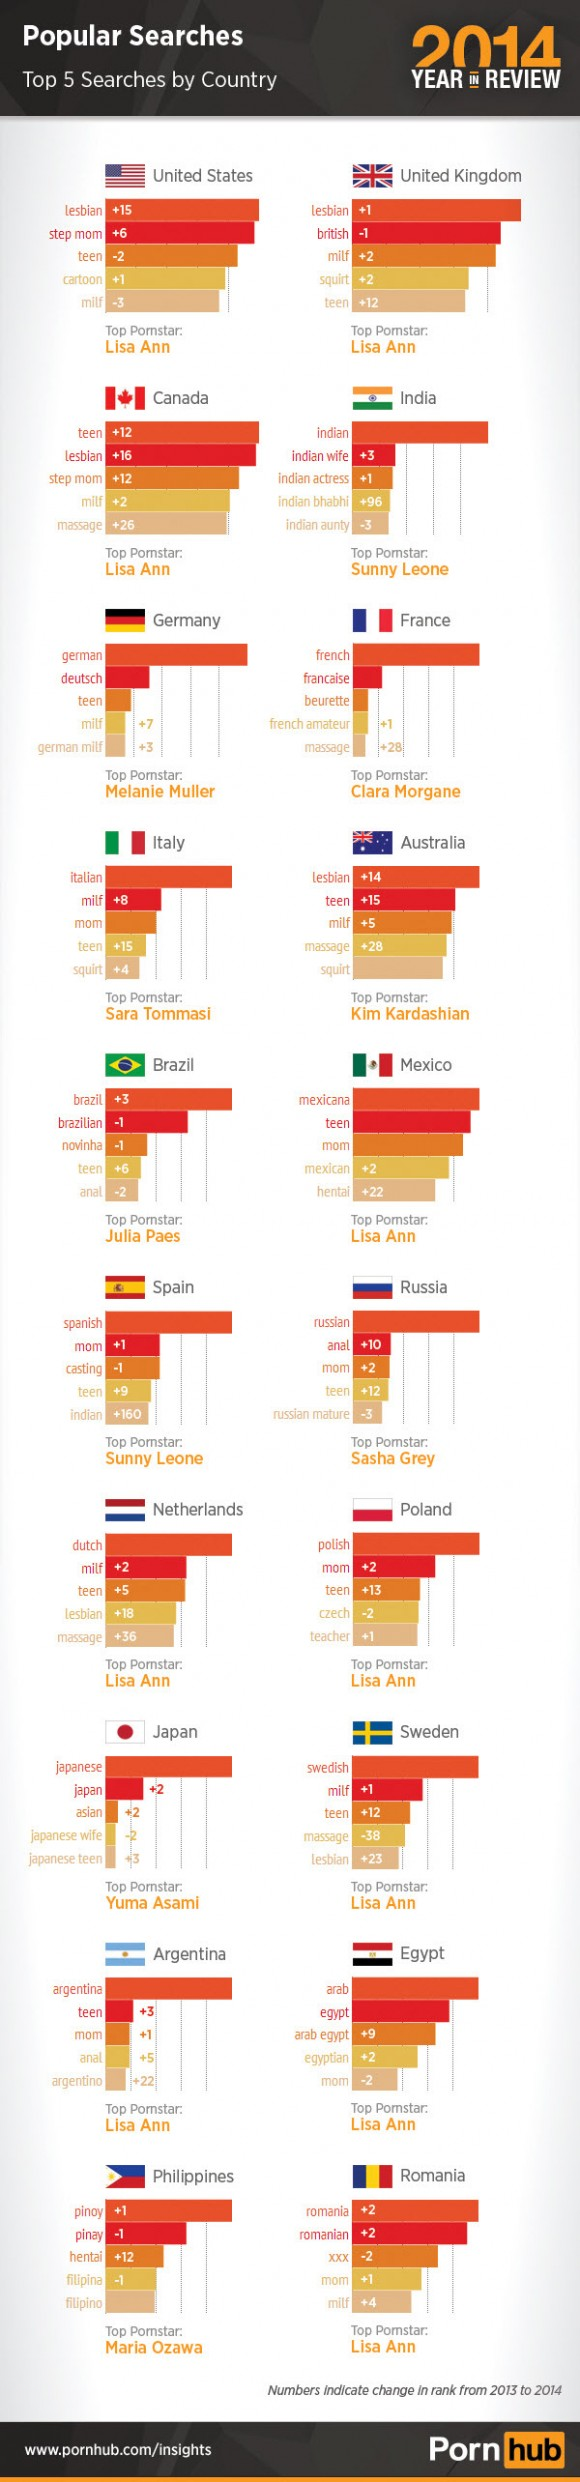 pornhub-2014-top-5-searches-country